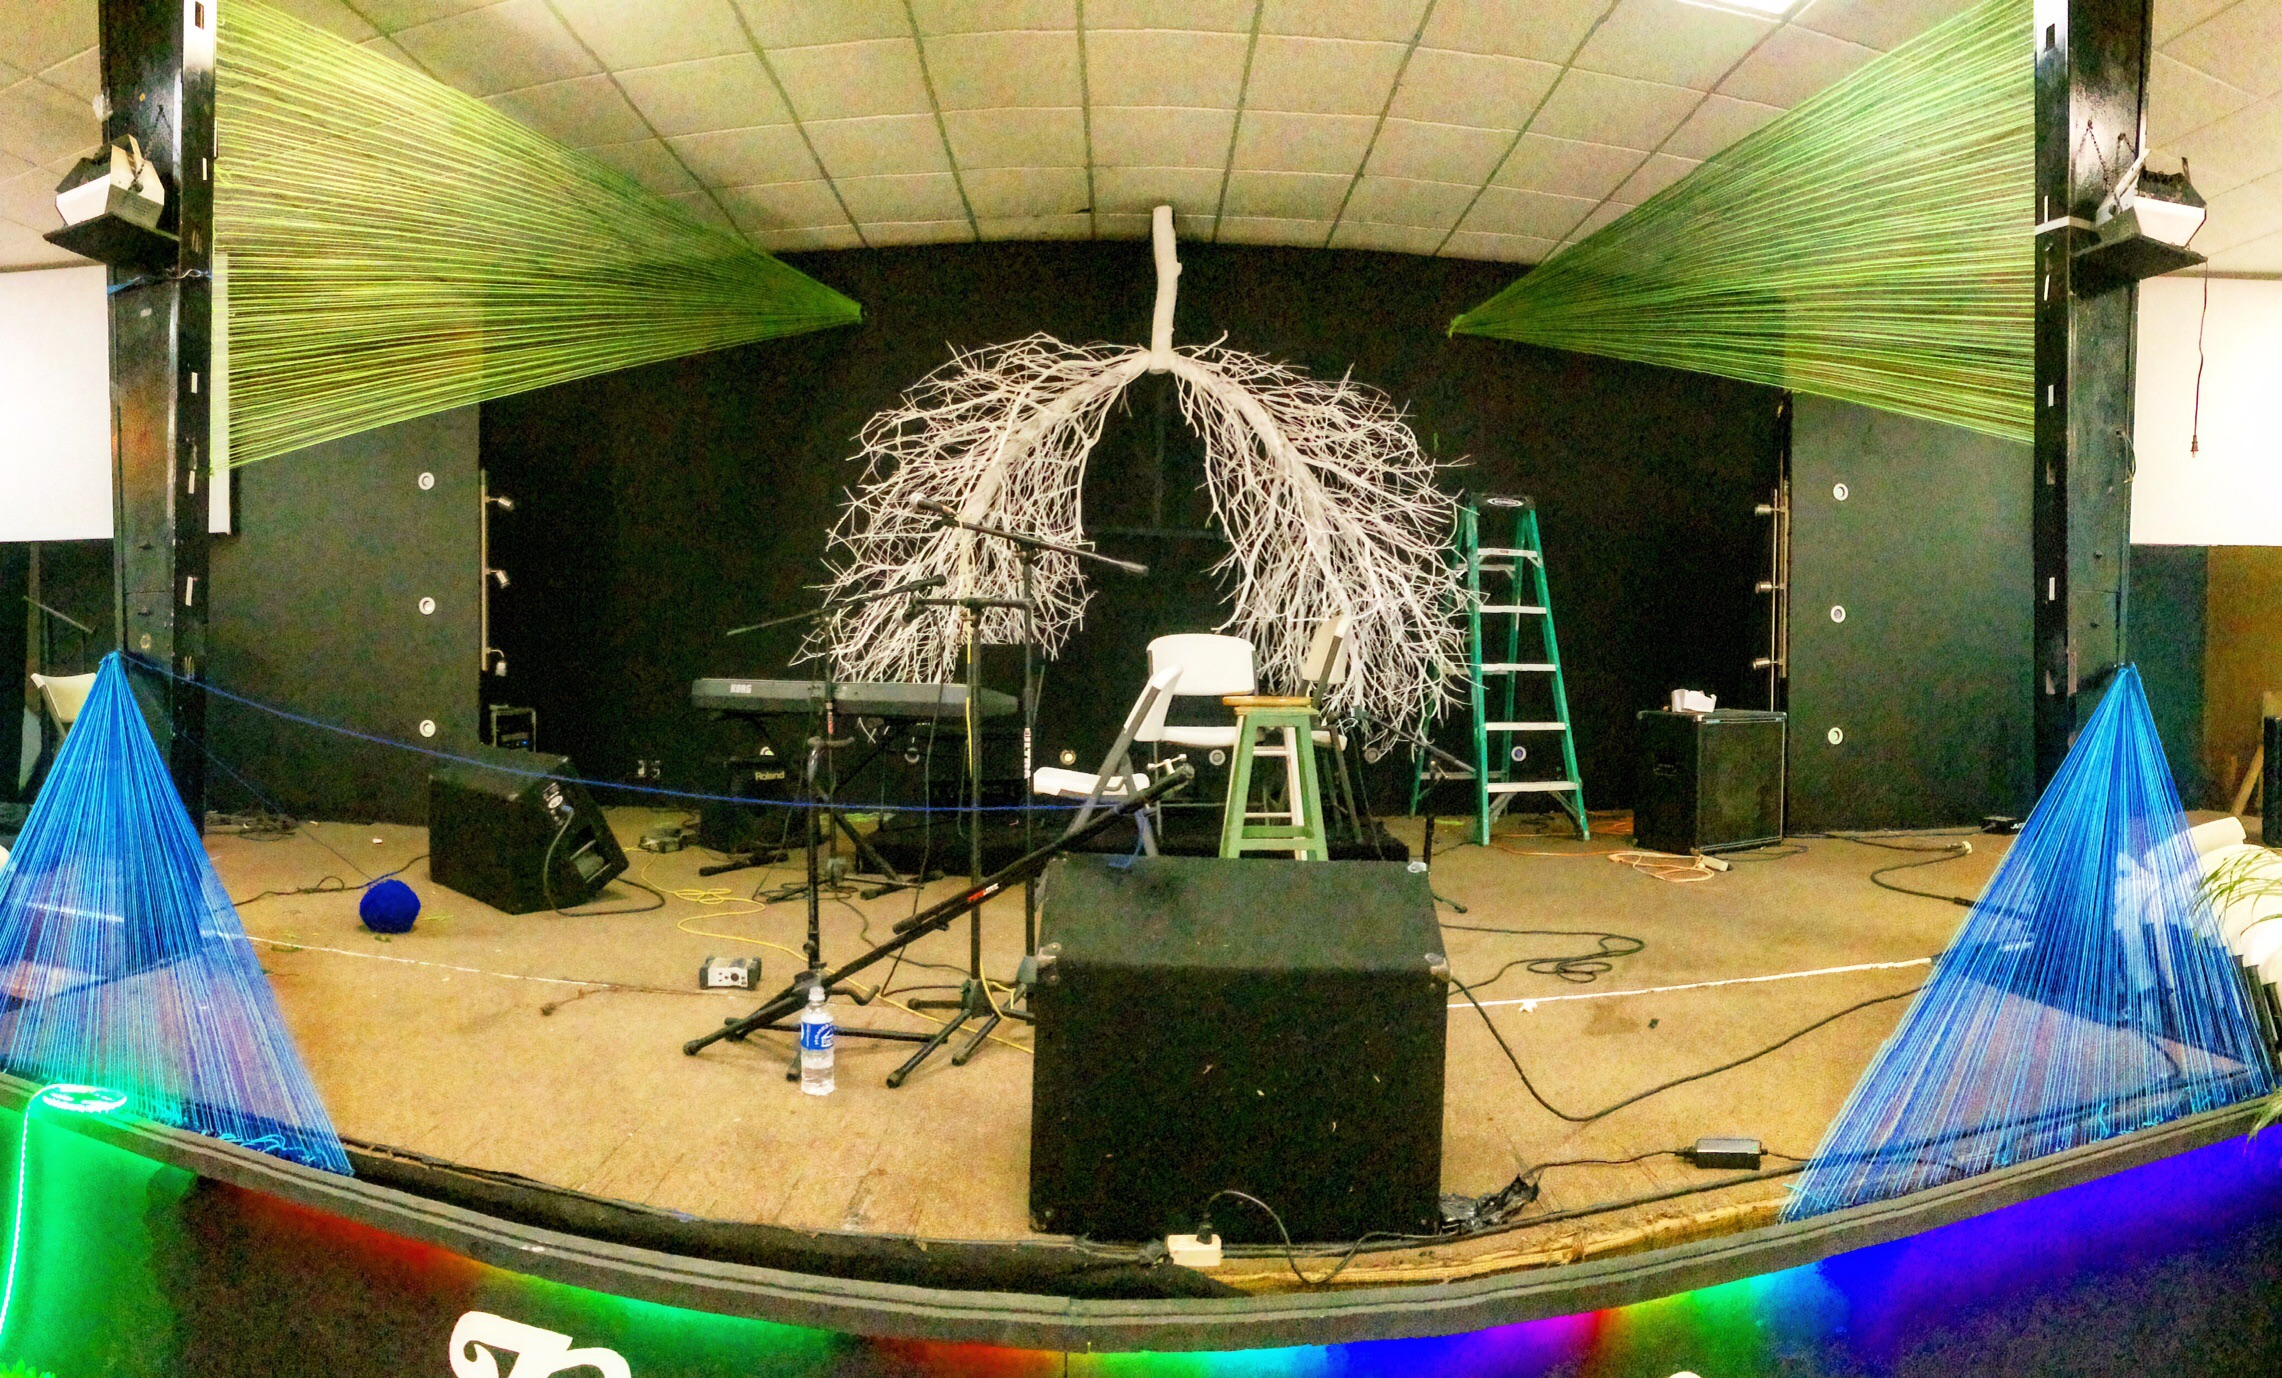 The stage features a ginormous set of lungs made of tree branches. Again, this is a simple and inexpensive concept. Yet it all comes down to execution. What you may not see from the photograph is how many screws are holding this together!